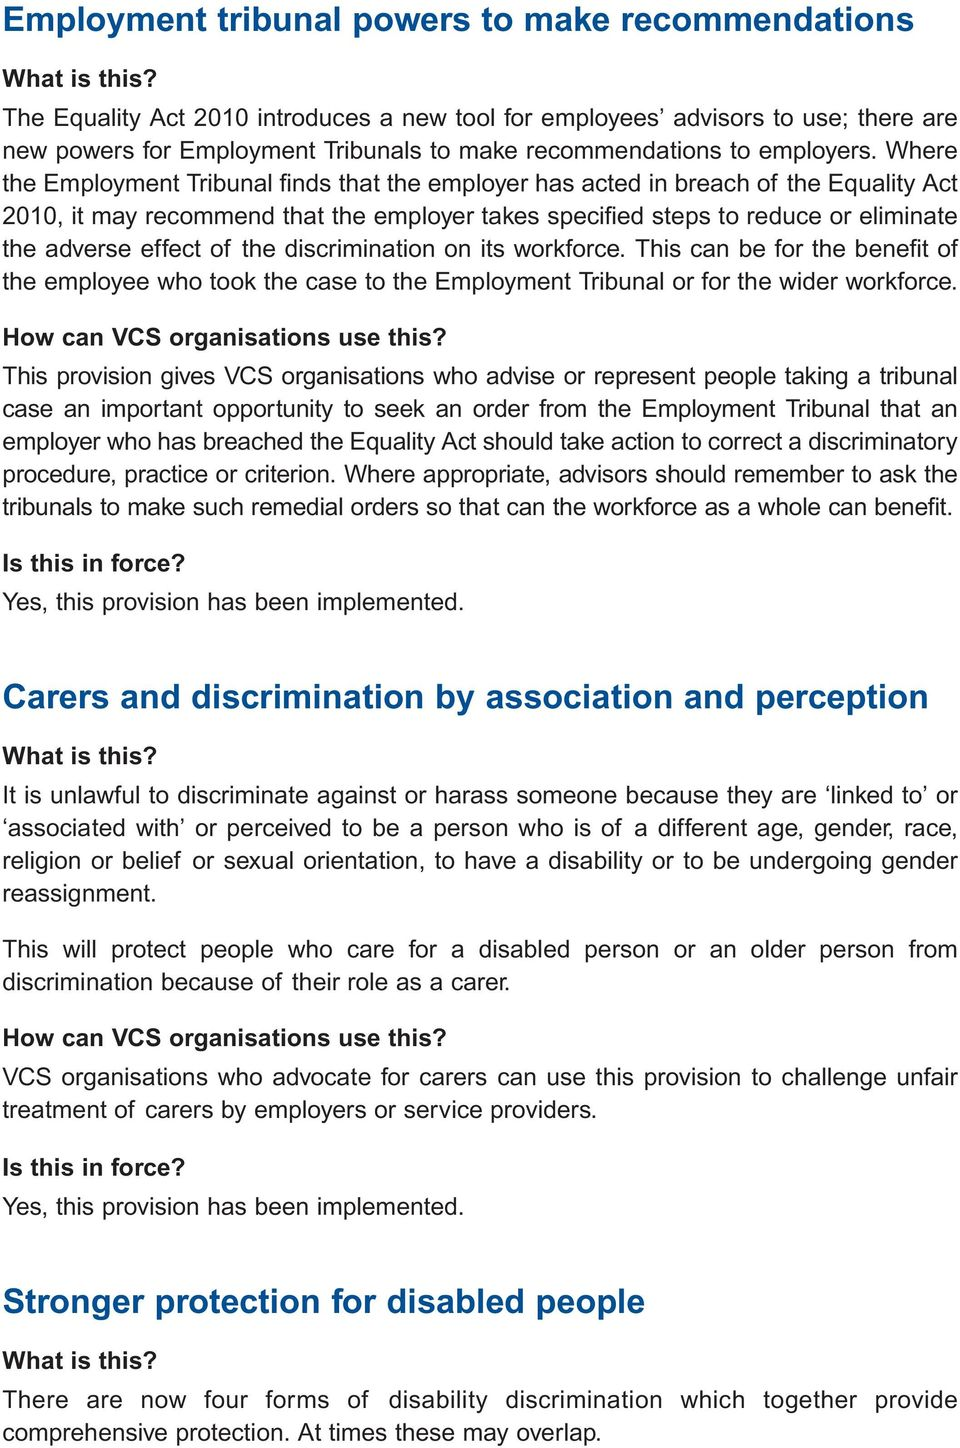 Where the Employment Tribunal finds that the employer has acted in breach of the Equality Act 2010, it may recommend that the employer takes specified steps to reduce or eliminate the adverse effect